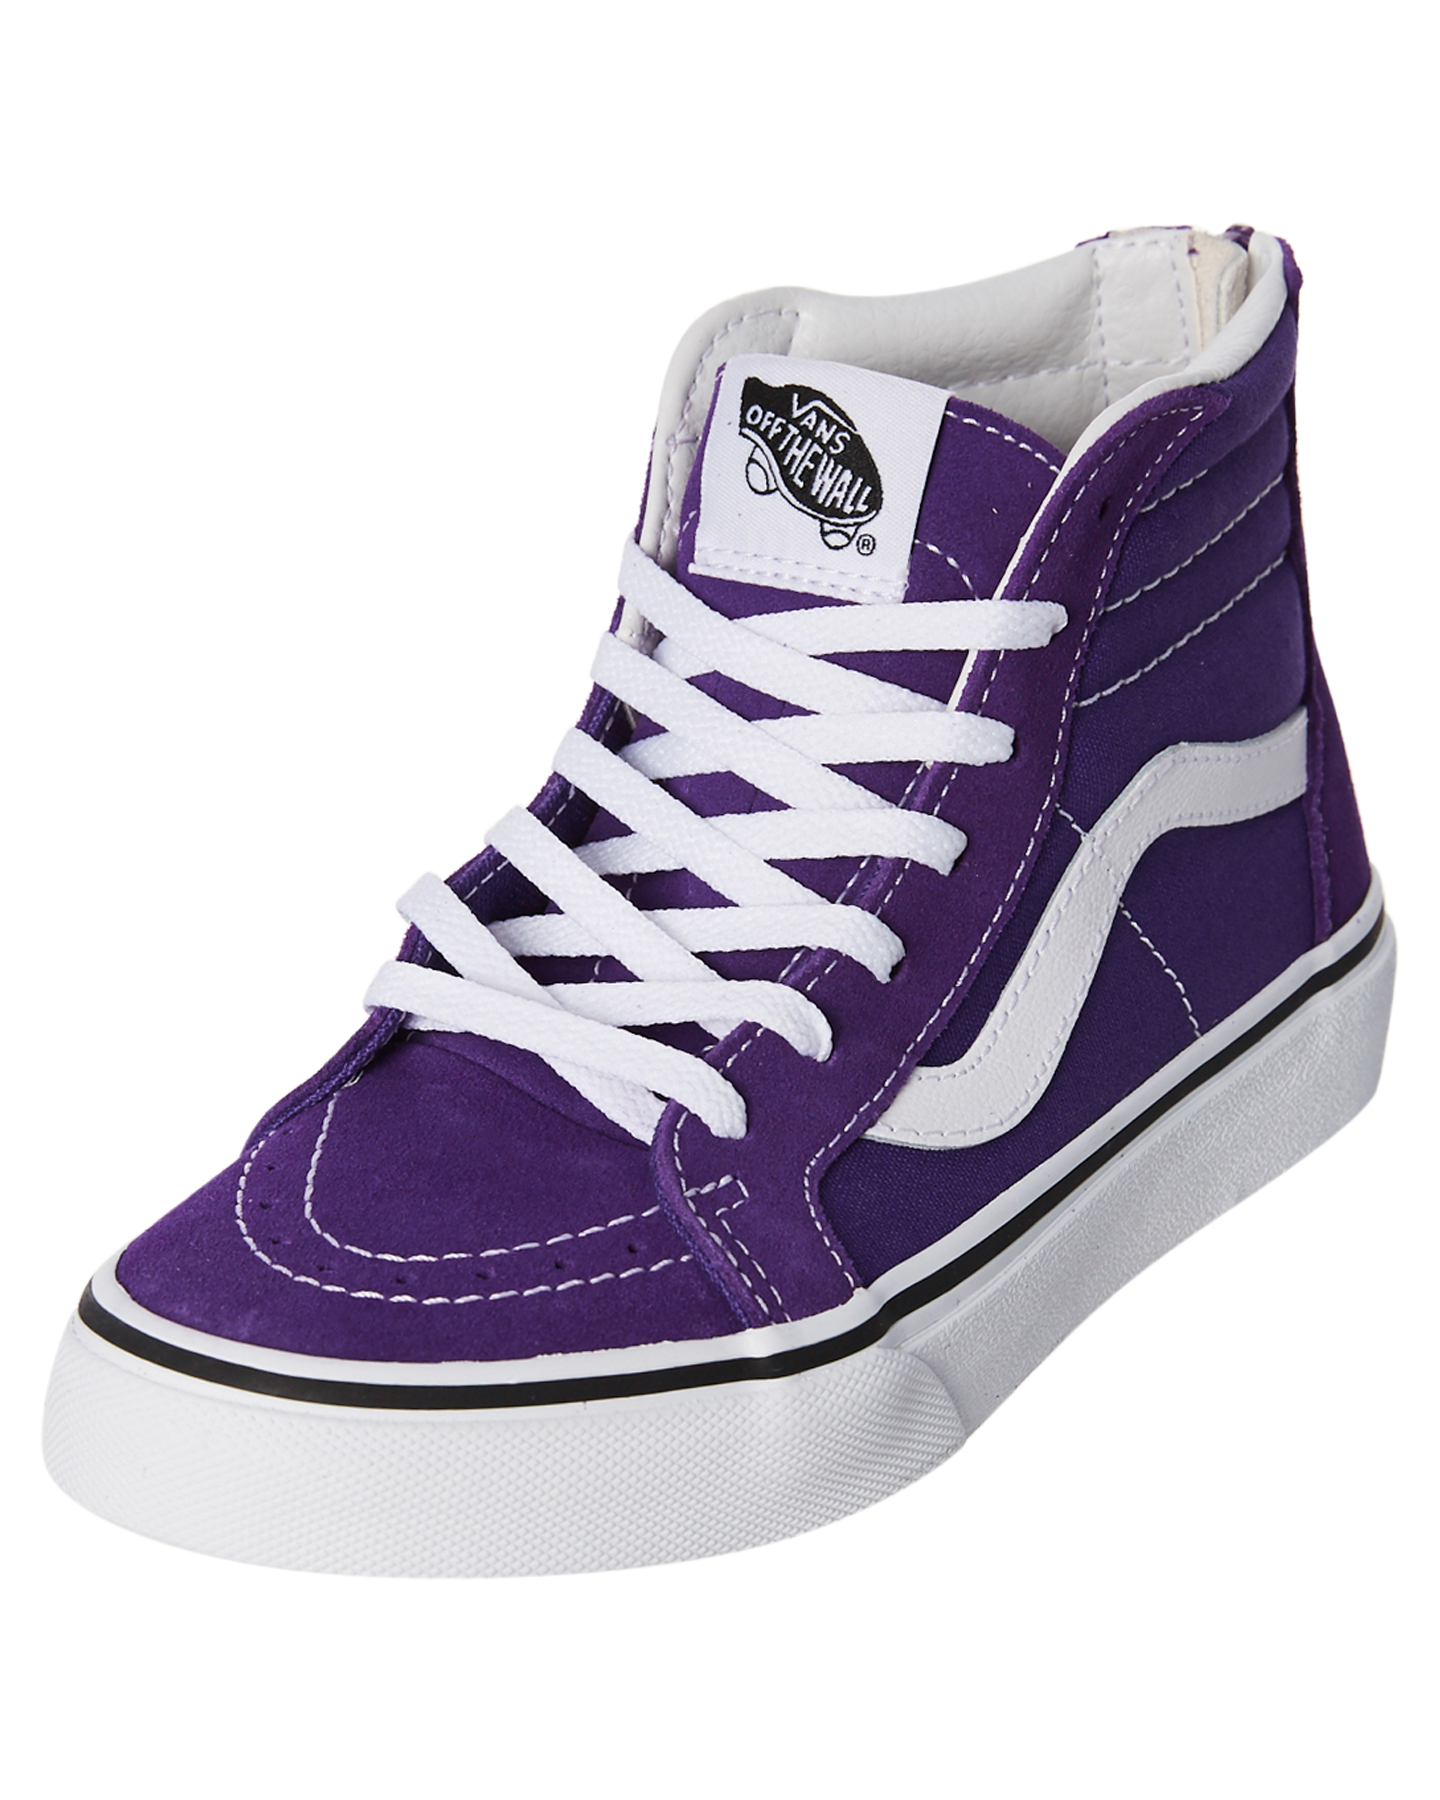 db152f91ecf2 New Vans Girls Sk8 Hip Zip Girls Shoe Rubber Purple